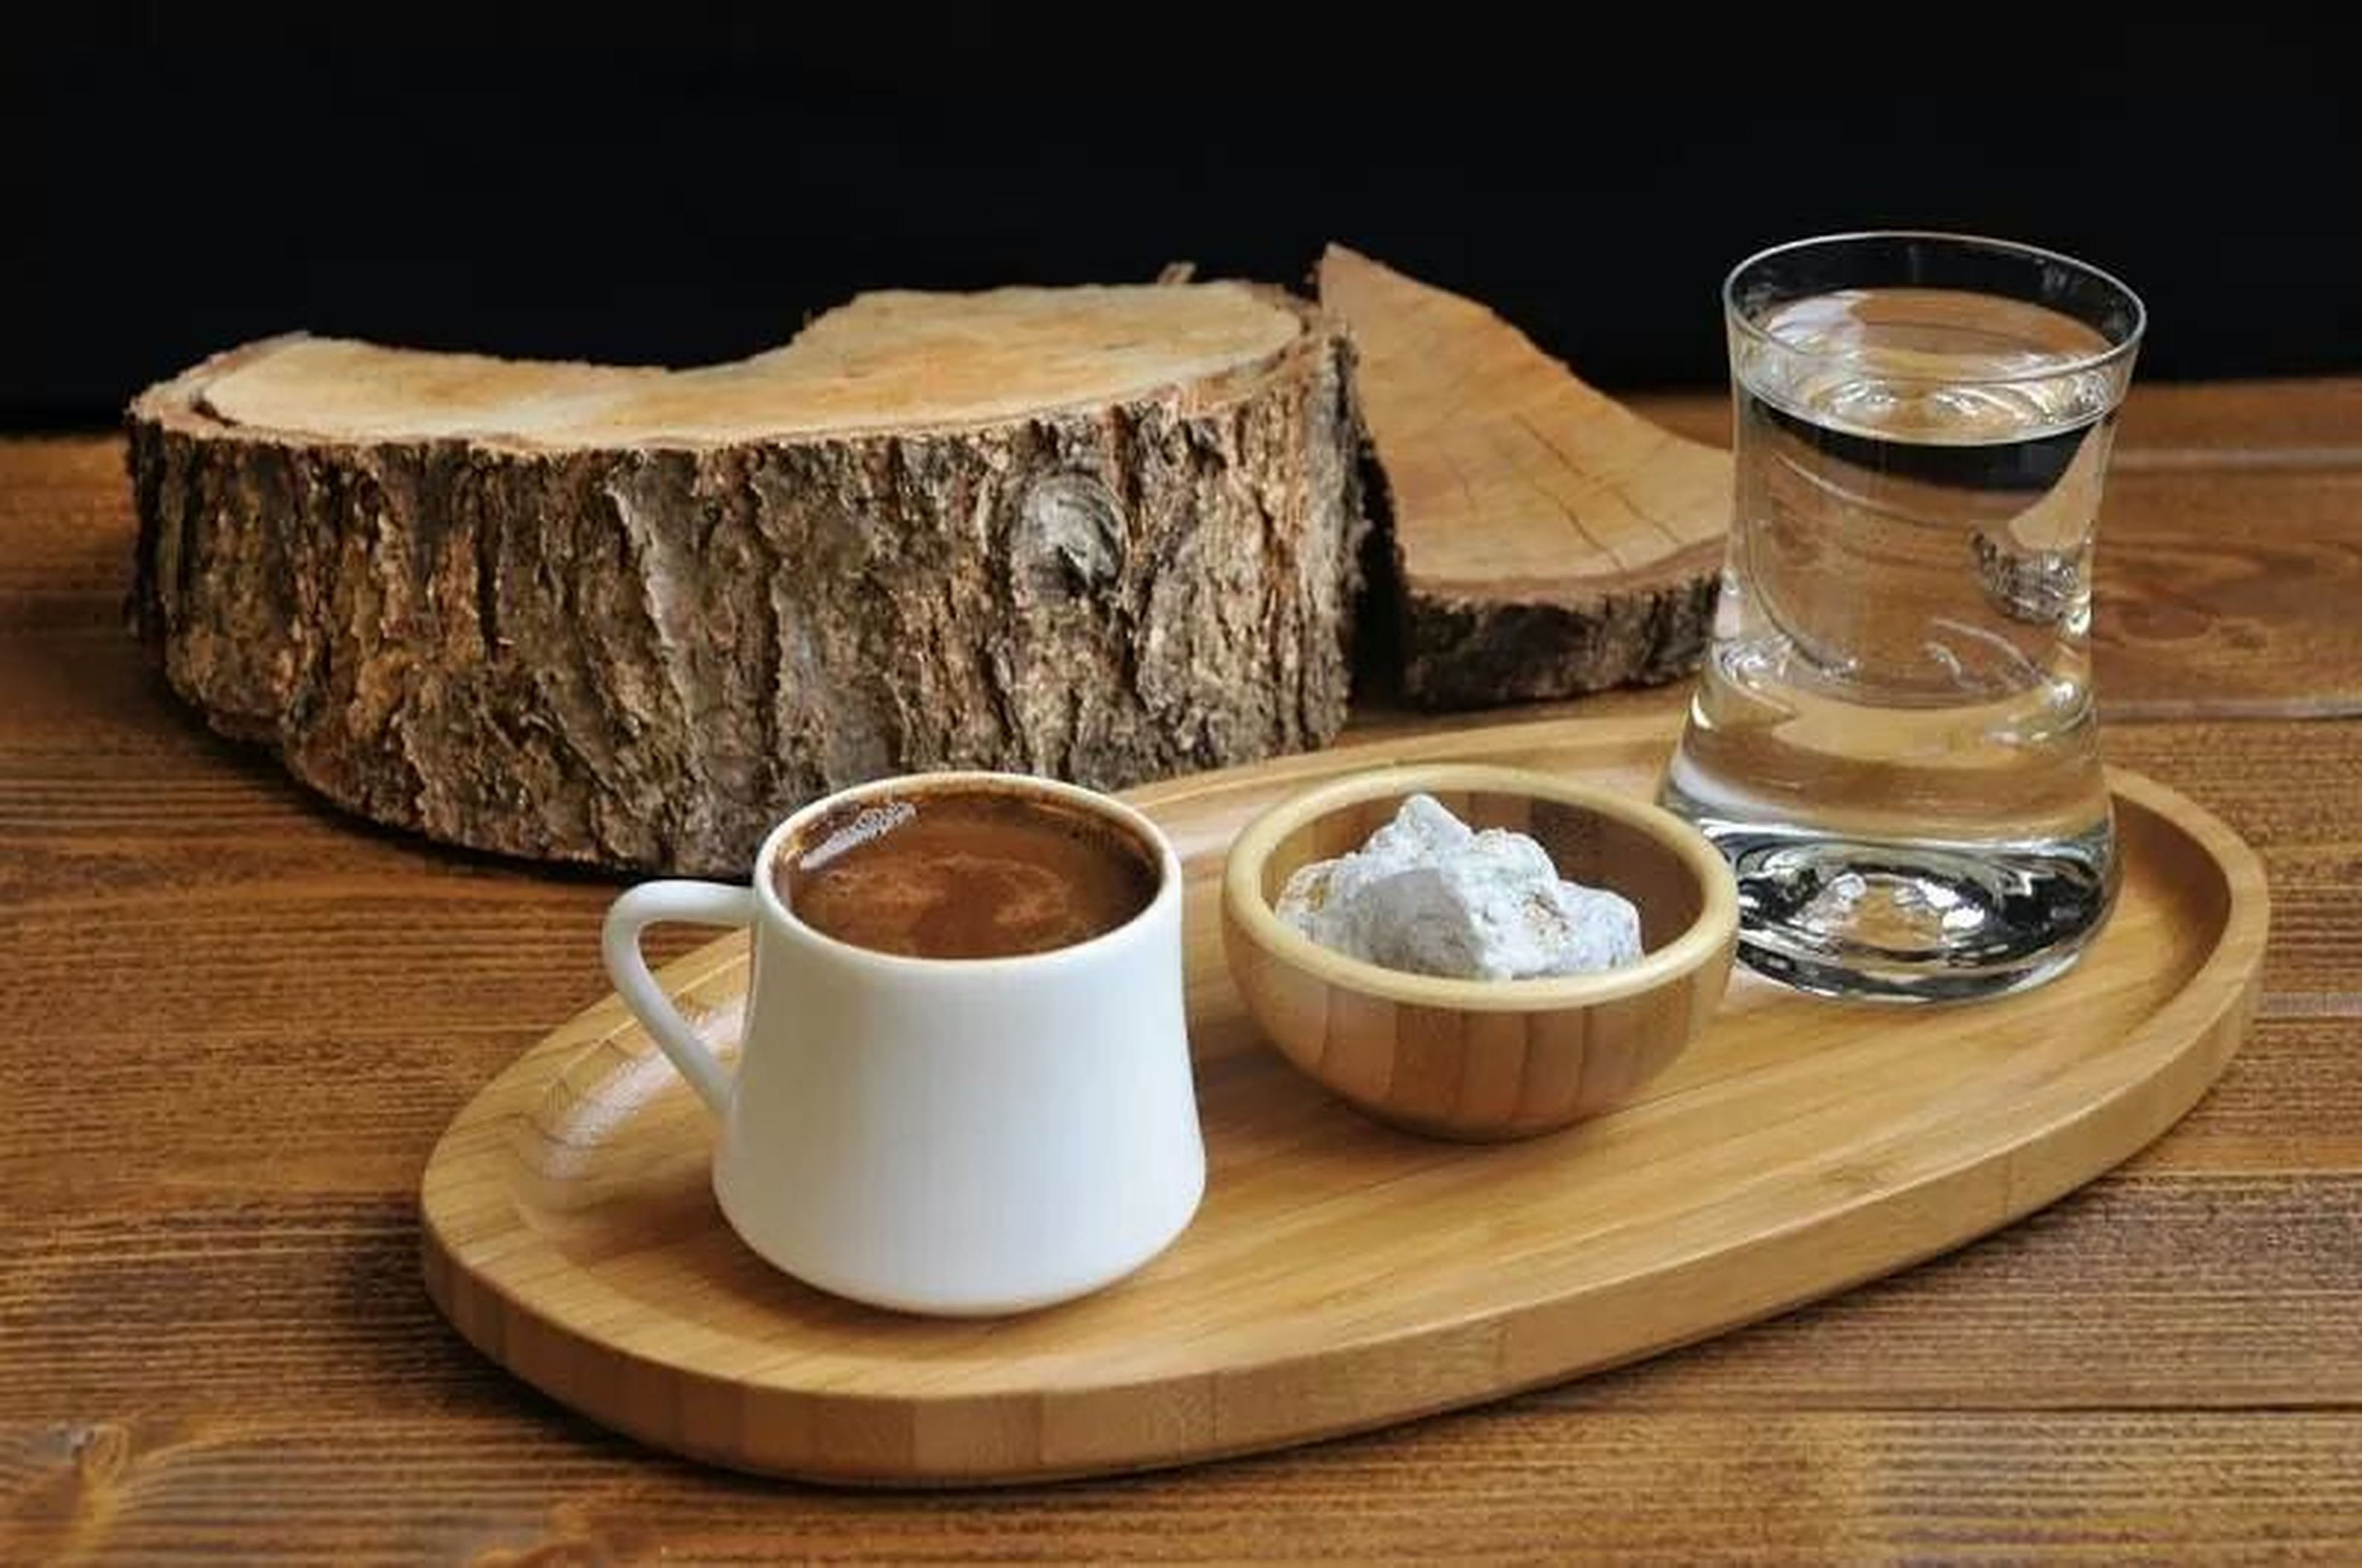 food and drink, table, drink, freshness, indoors, refreshment, still life, coffee - drink, coffee cup, food, drinking glass, wood - material, saucer, high angle view, close-up, ready-to-eat, healthy eating, wooden, breakfast, bread